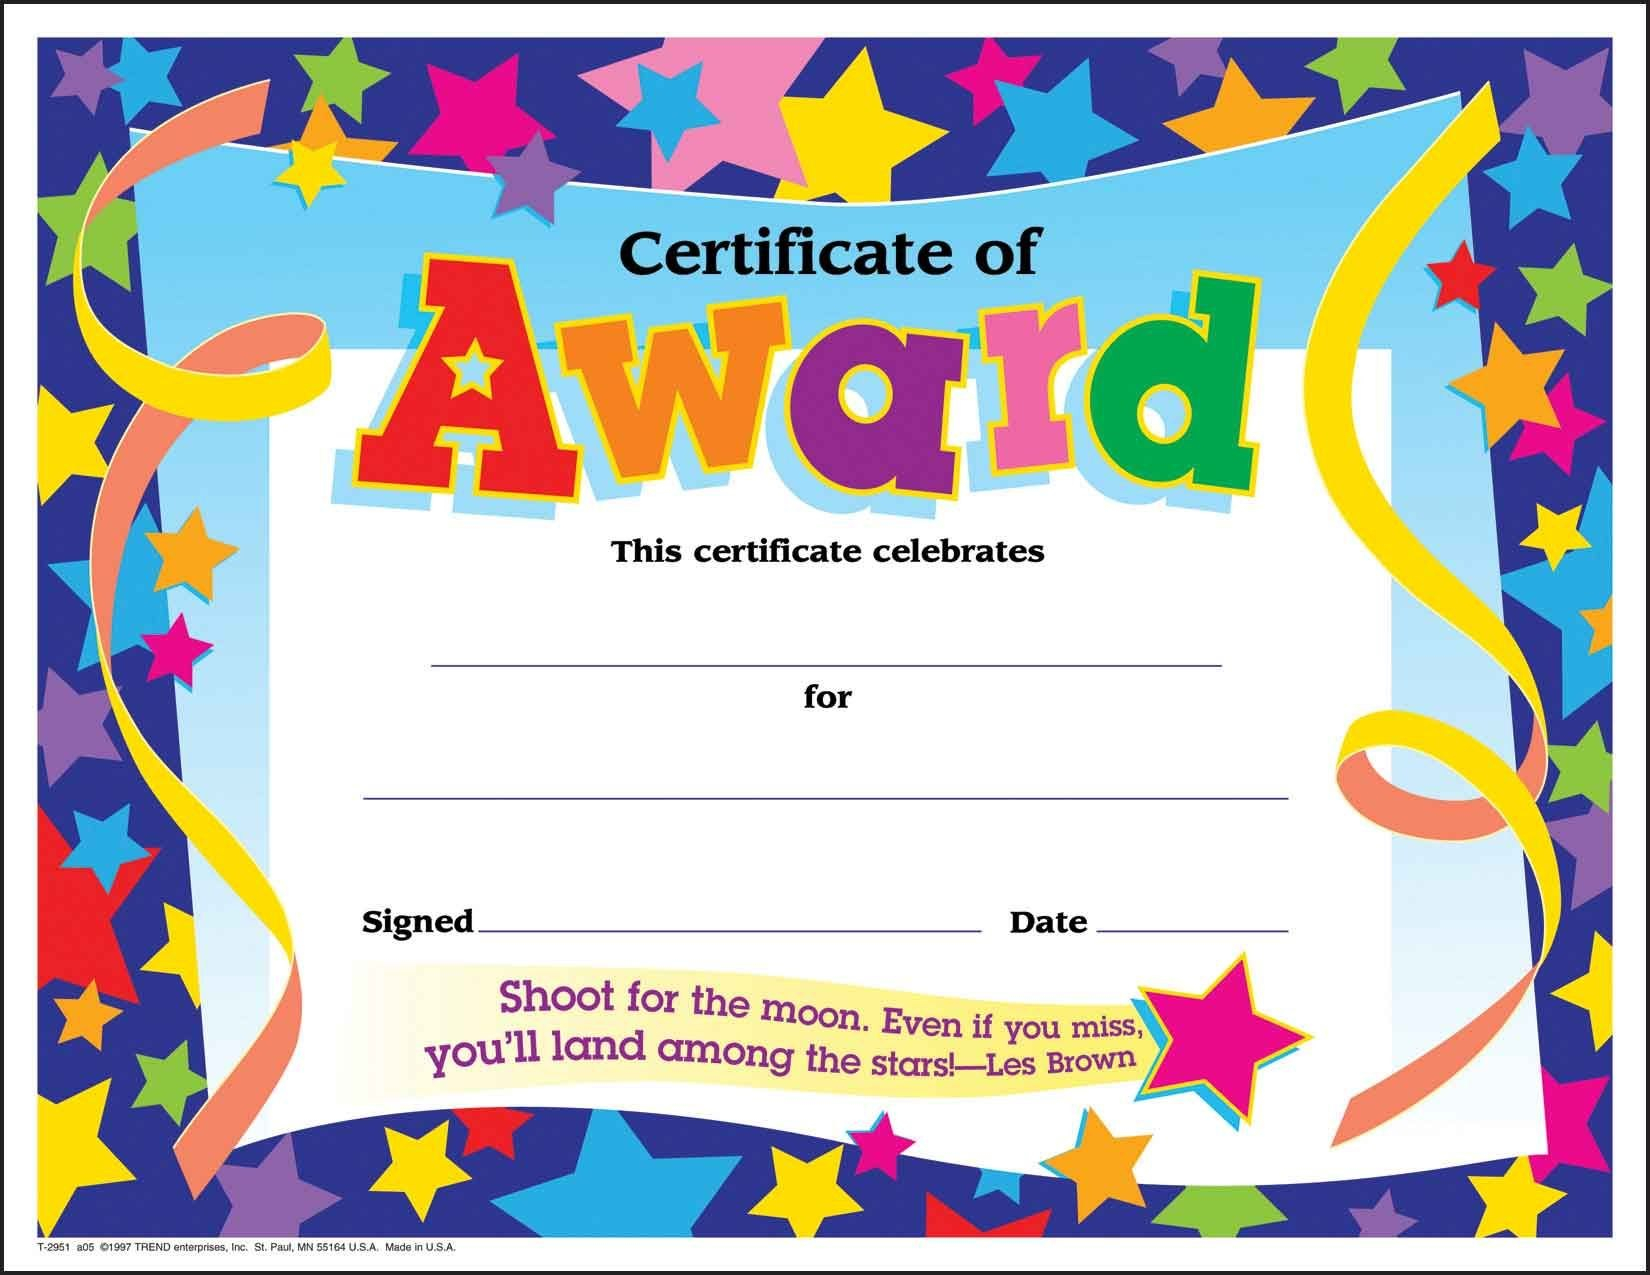 Certificate Template For Kids Free Certificate Templates Intended For Certificate Of Achievement Template For Kids